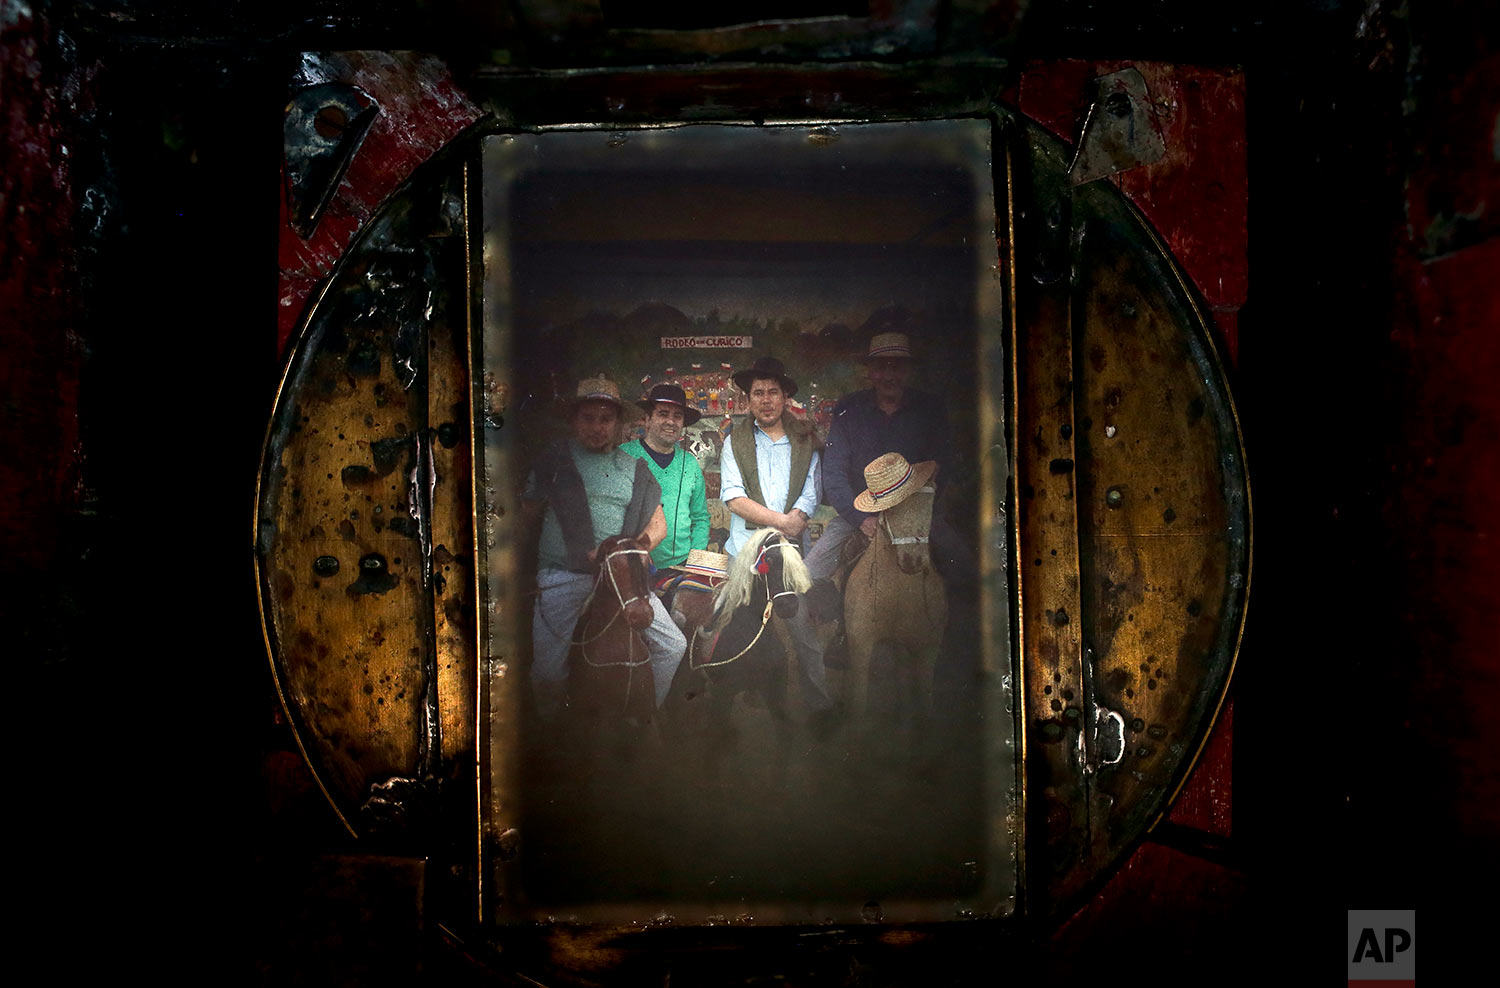 A group of friends fill the viewfinder of Luis Maldonado's old wooden old box camera, during a fair marking Independence Day in Santiago, Chile, Sept. 4, 2016. The image making process lasts about 20 minutes, resulting in a vintage-looking image. (AP Photo/Esteban Felix)